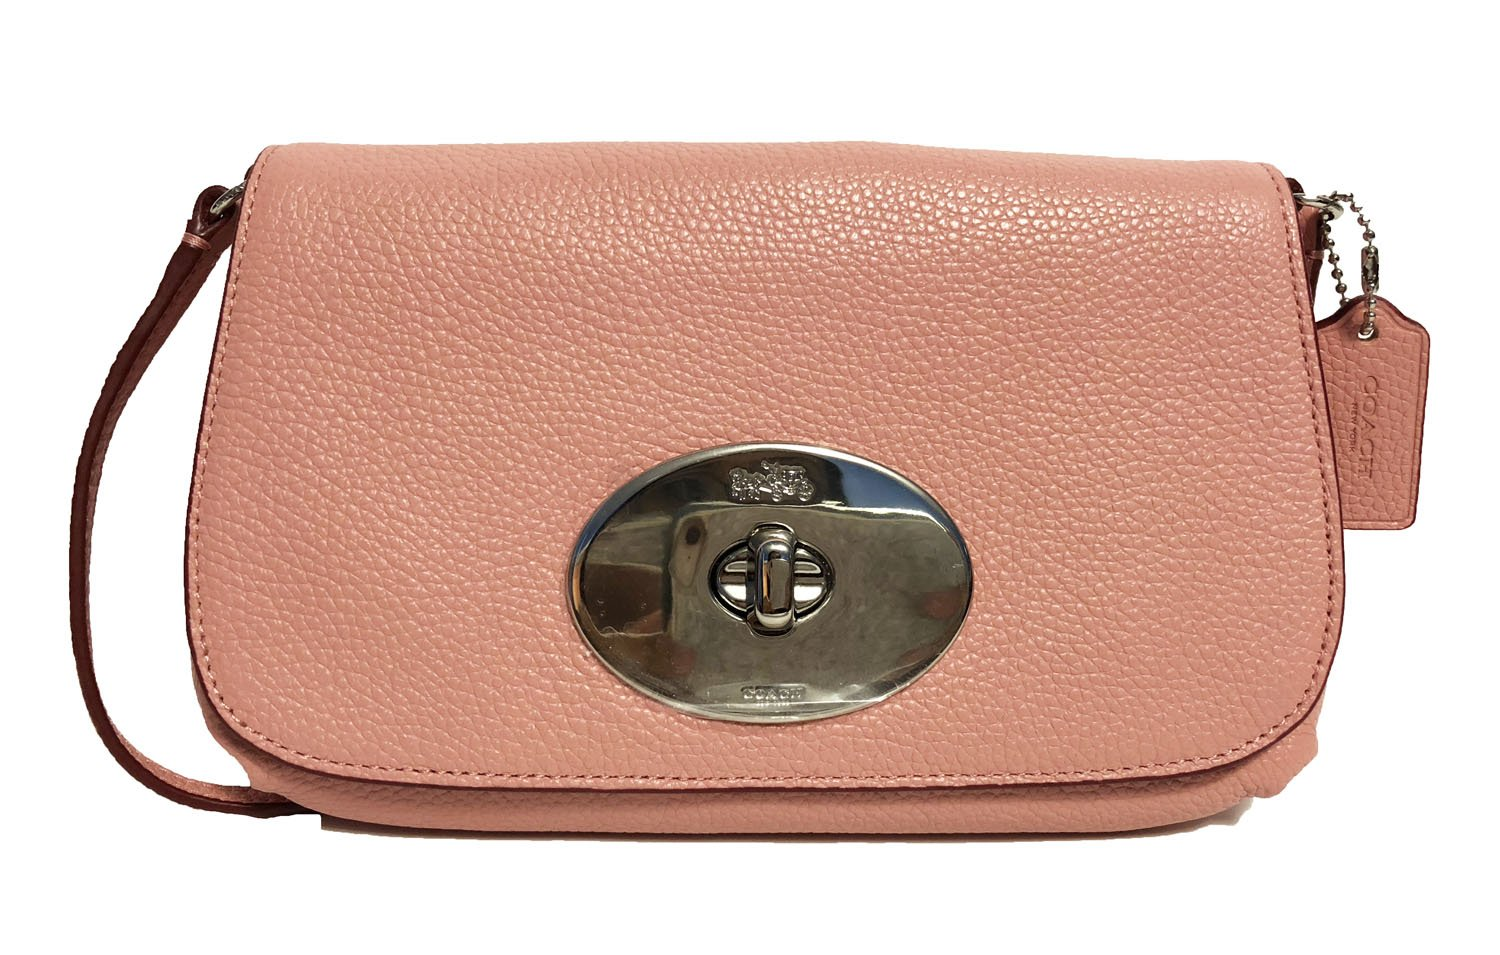 COACH Women's Handbag Pebbled Leather Crossbody Purse 52896 (Pink) by Coach